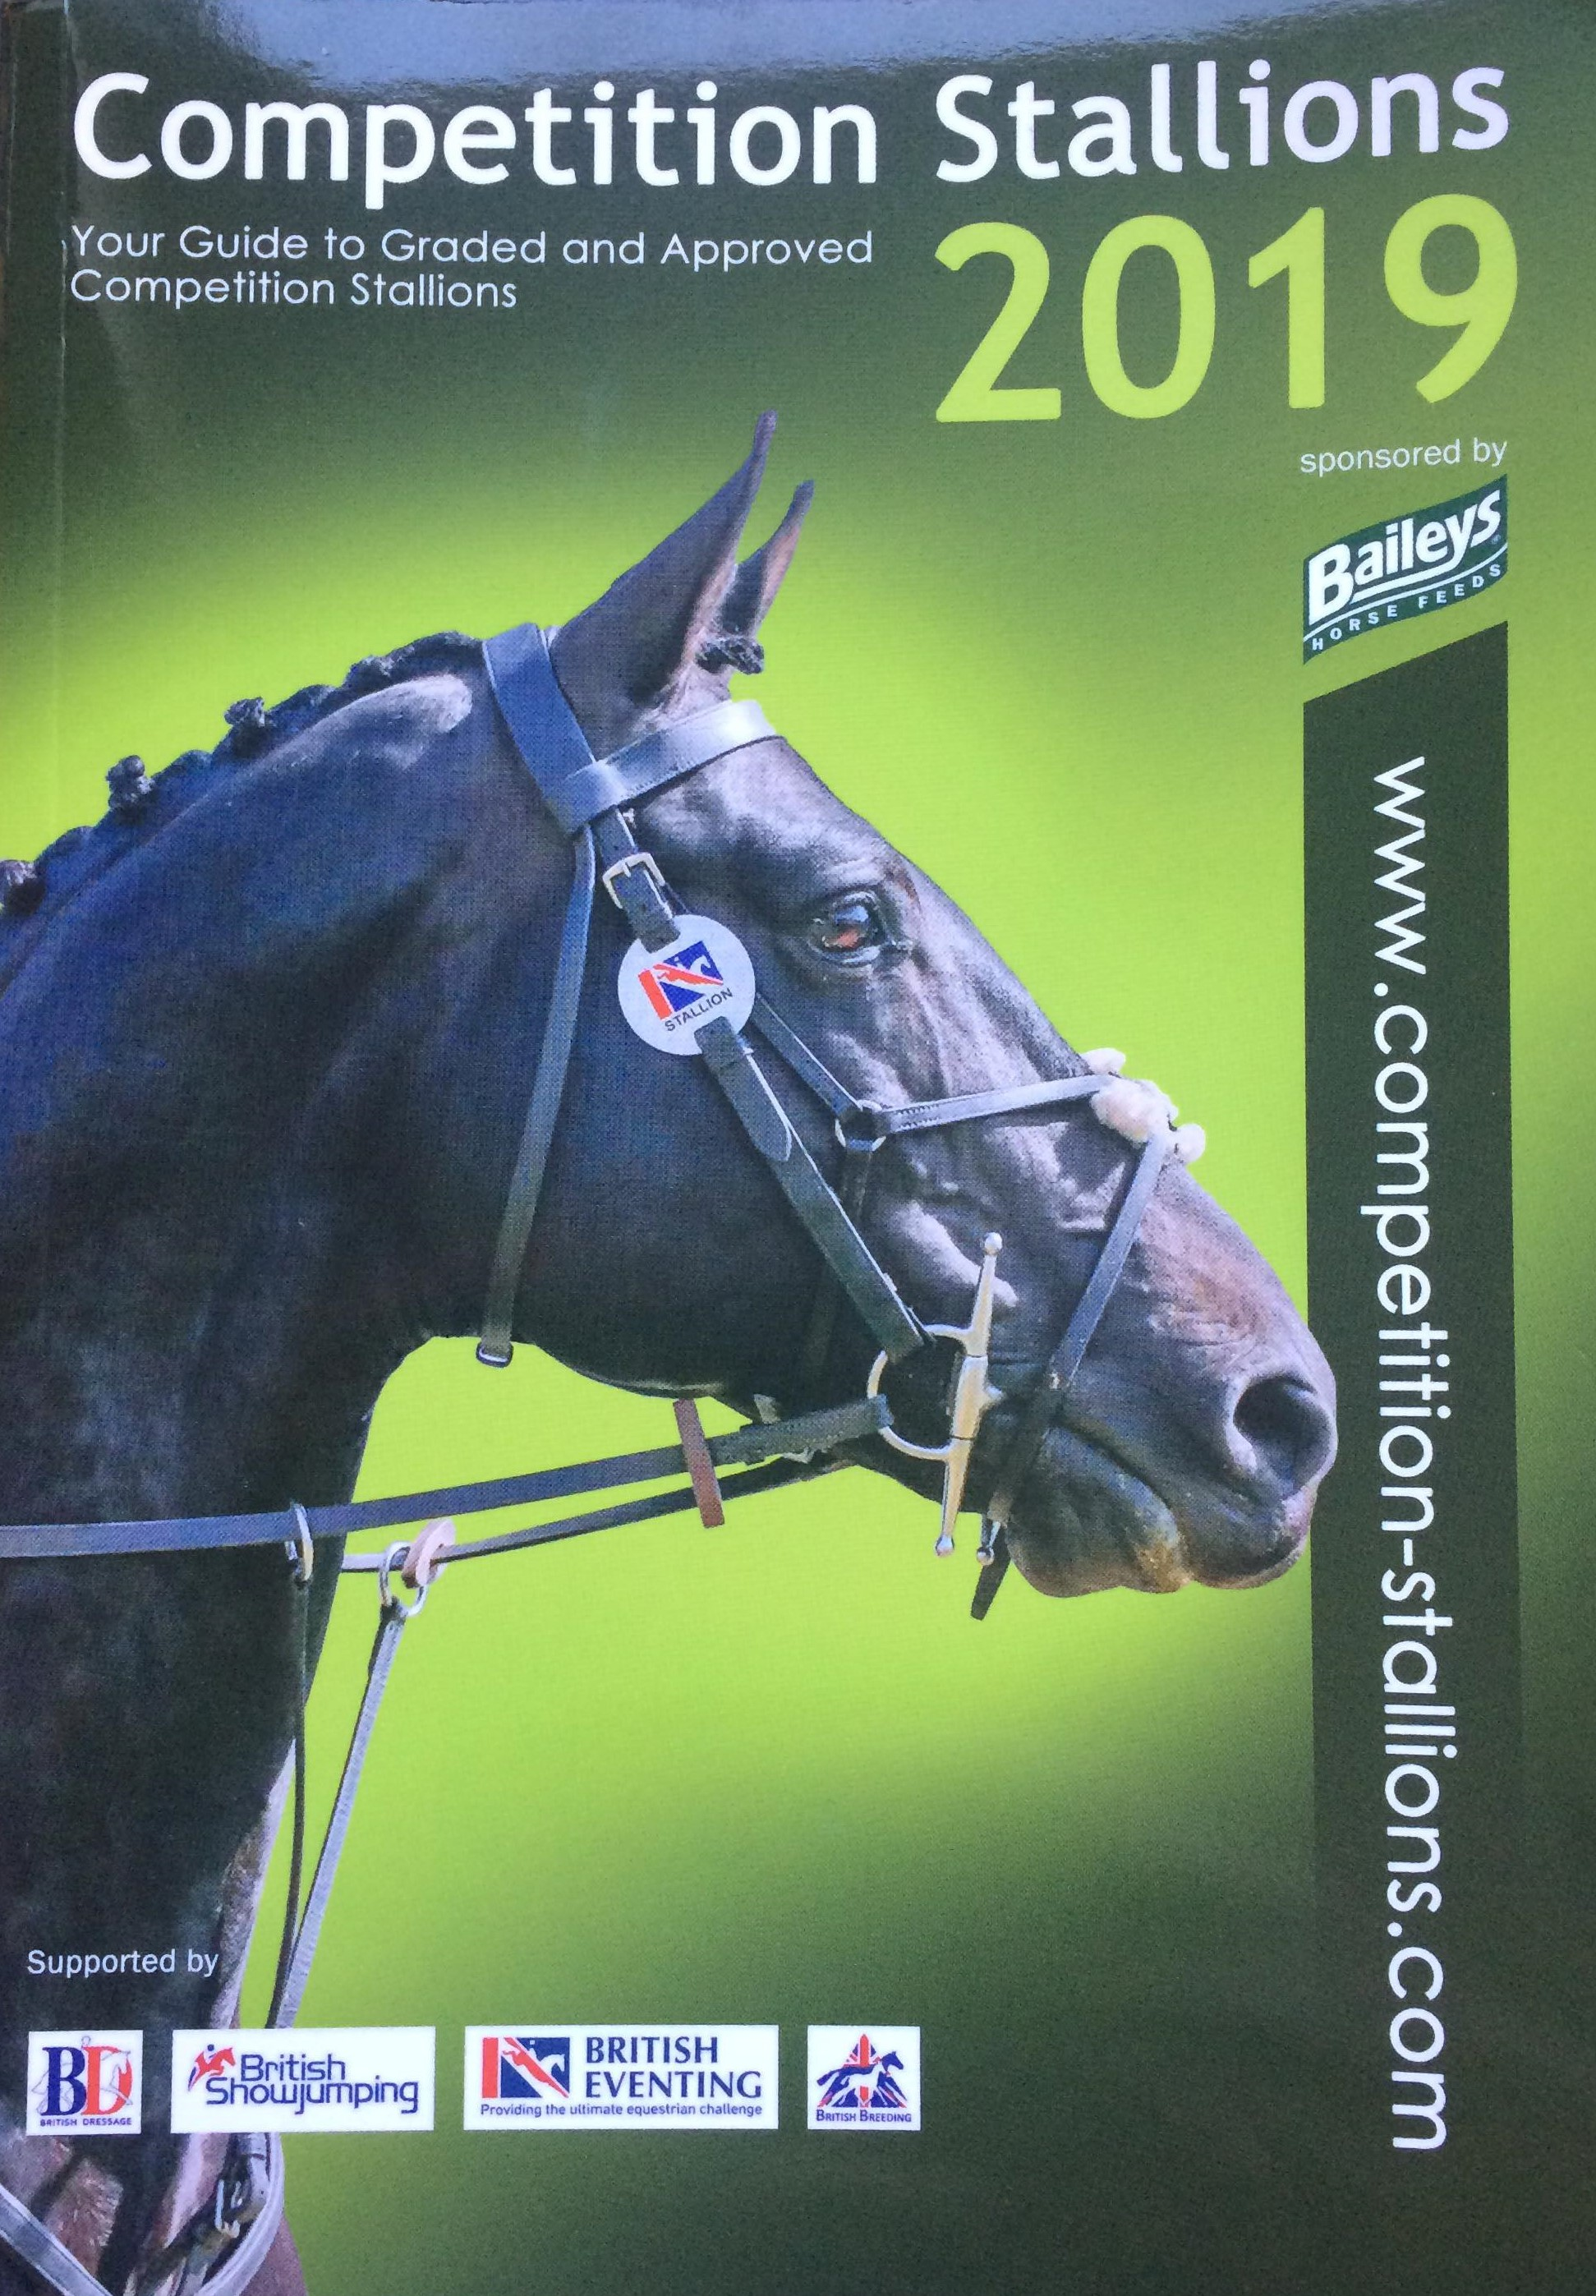 Competition Stallion Guide_2019 Front Cover.jpg